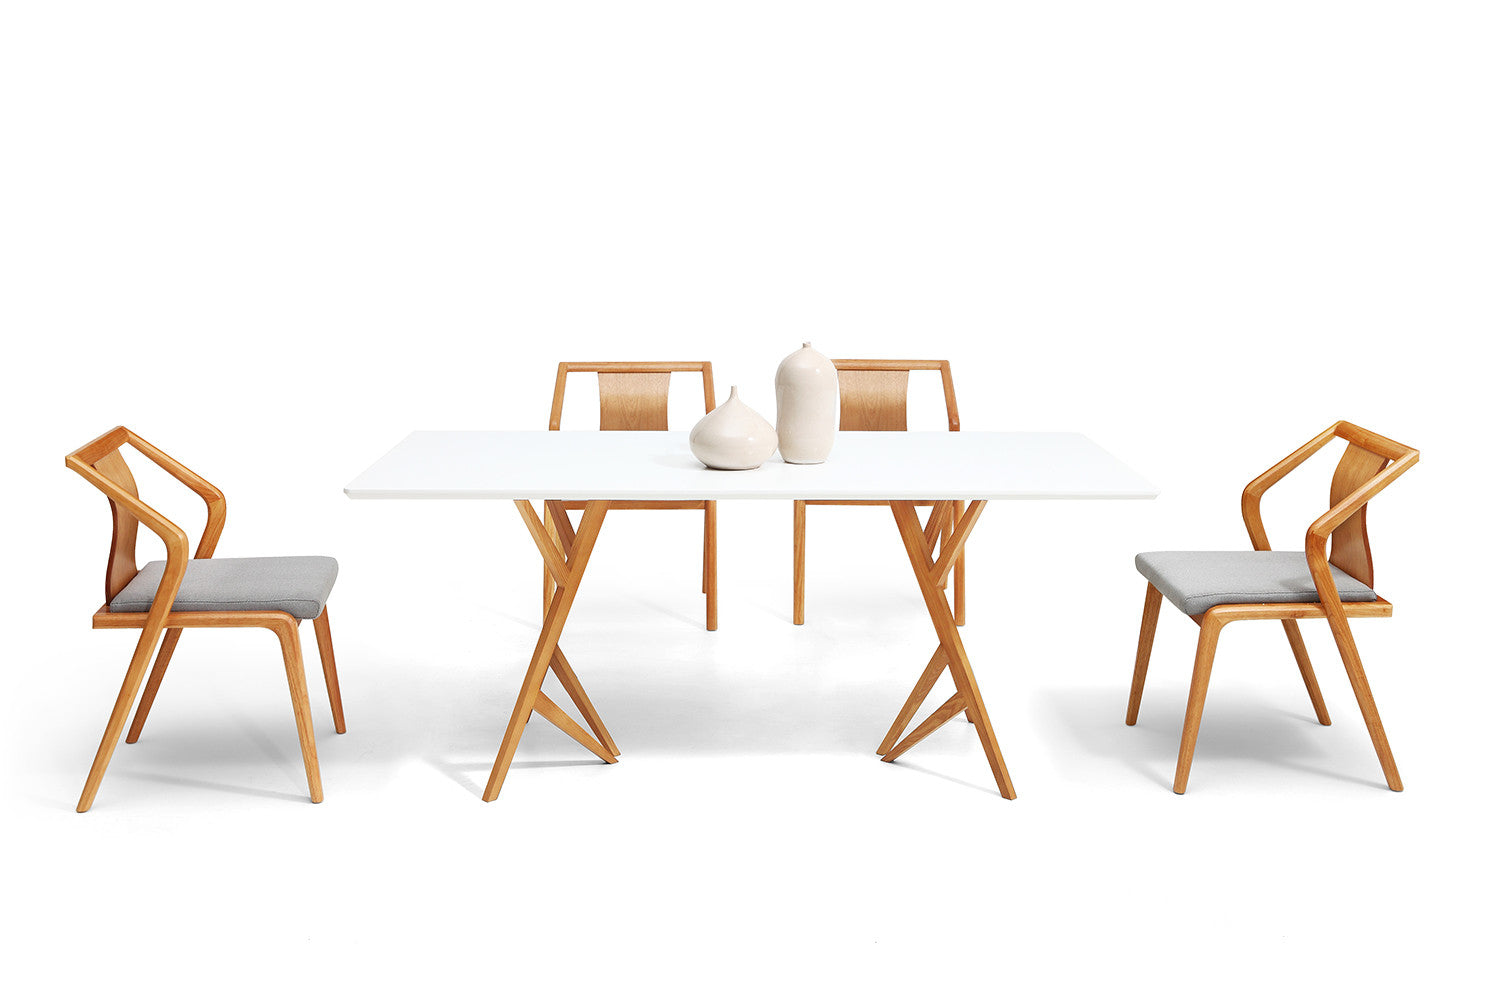 Table de salle manger design scandinave vispa dewarens for Salle a manger italienne design